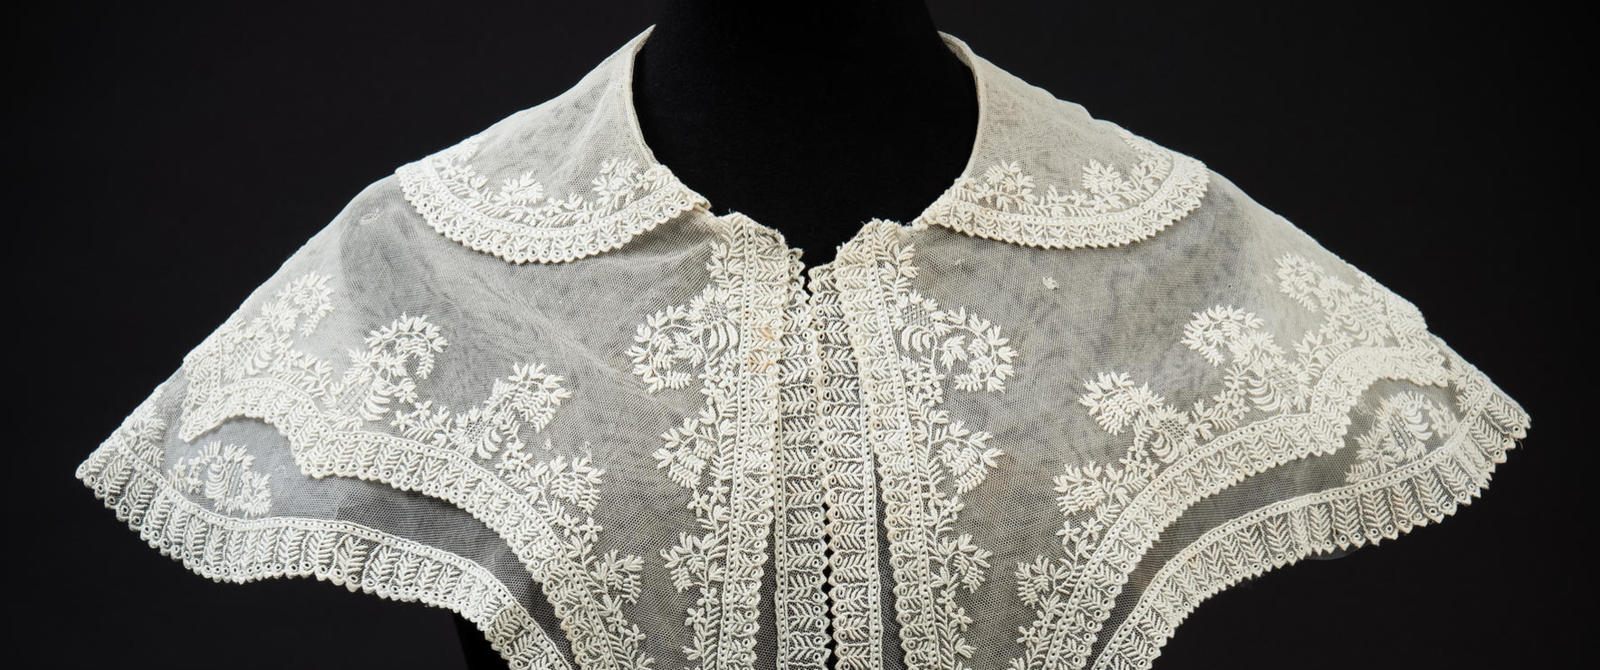 Image: Triple layered cream embroidered net pelerine collar with pendant squared ends, about 1827